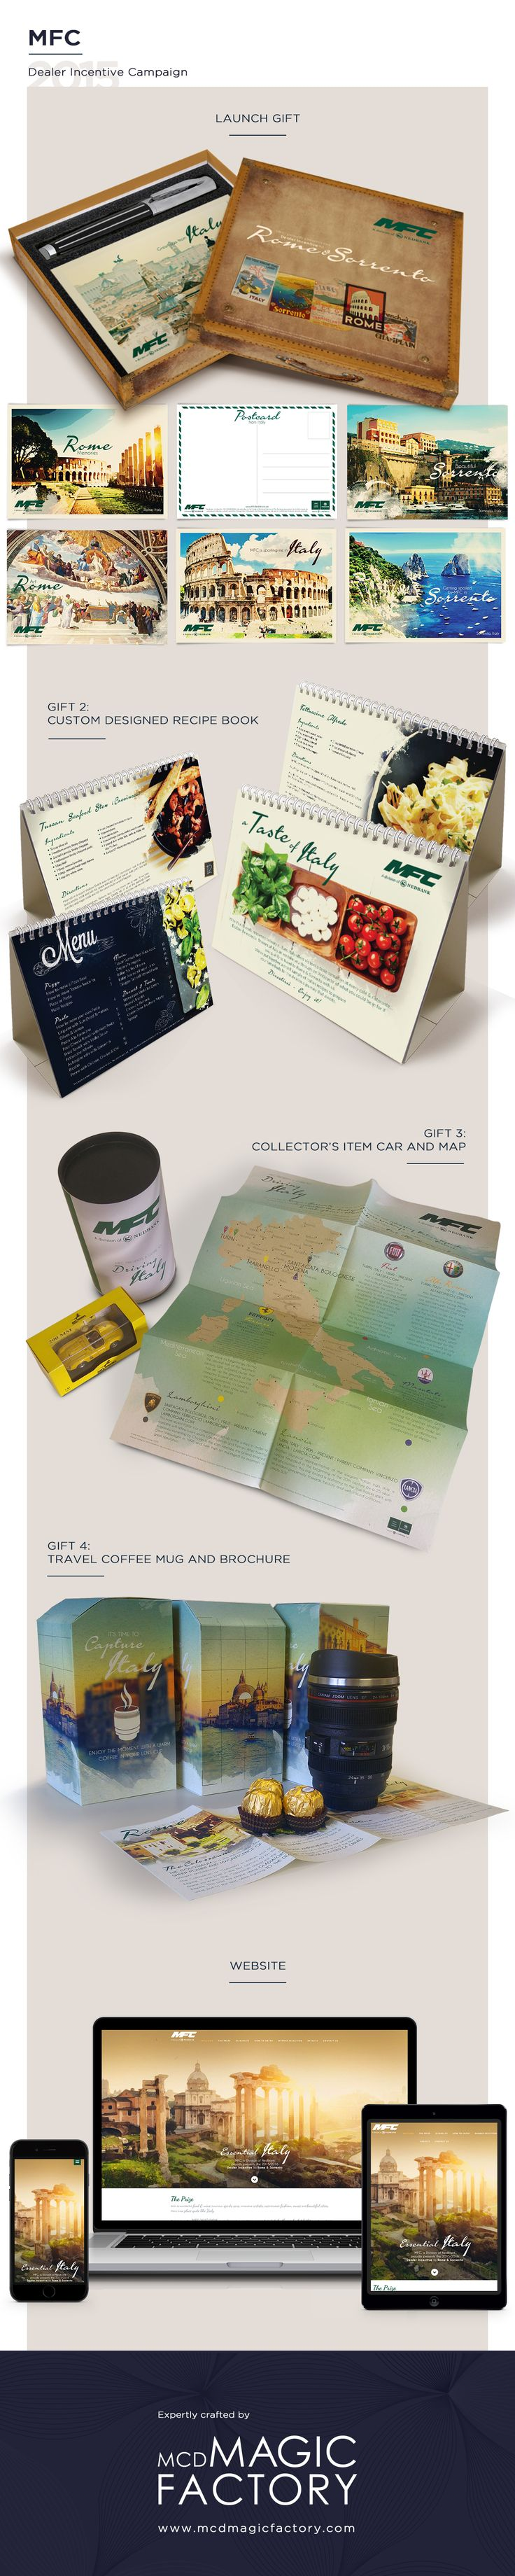 """Client: MFC, a division of Nedbank 